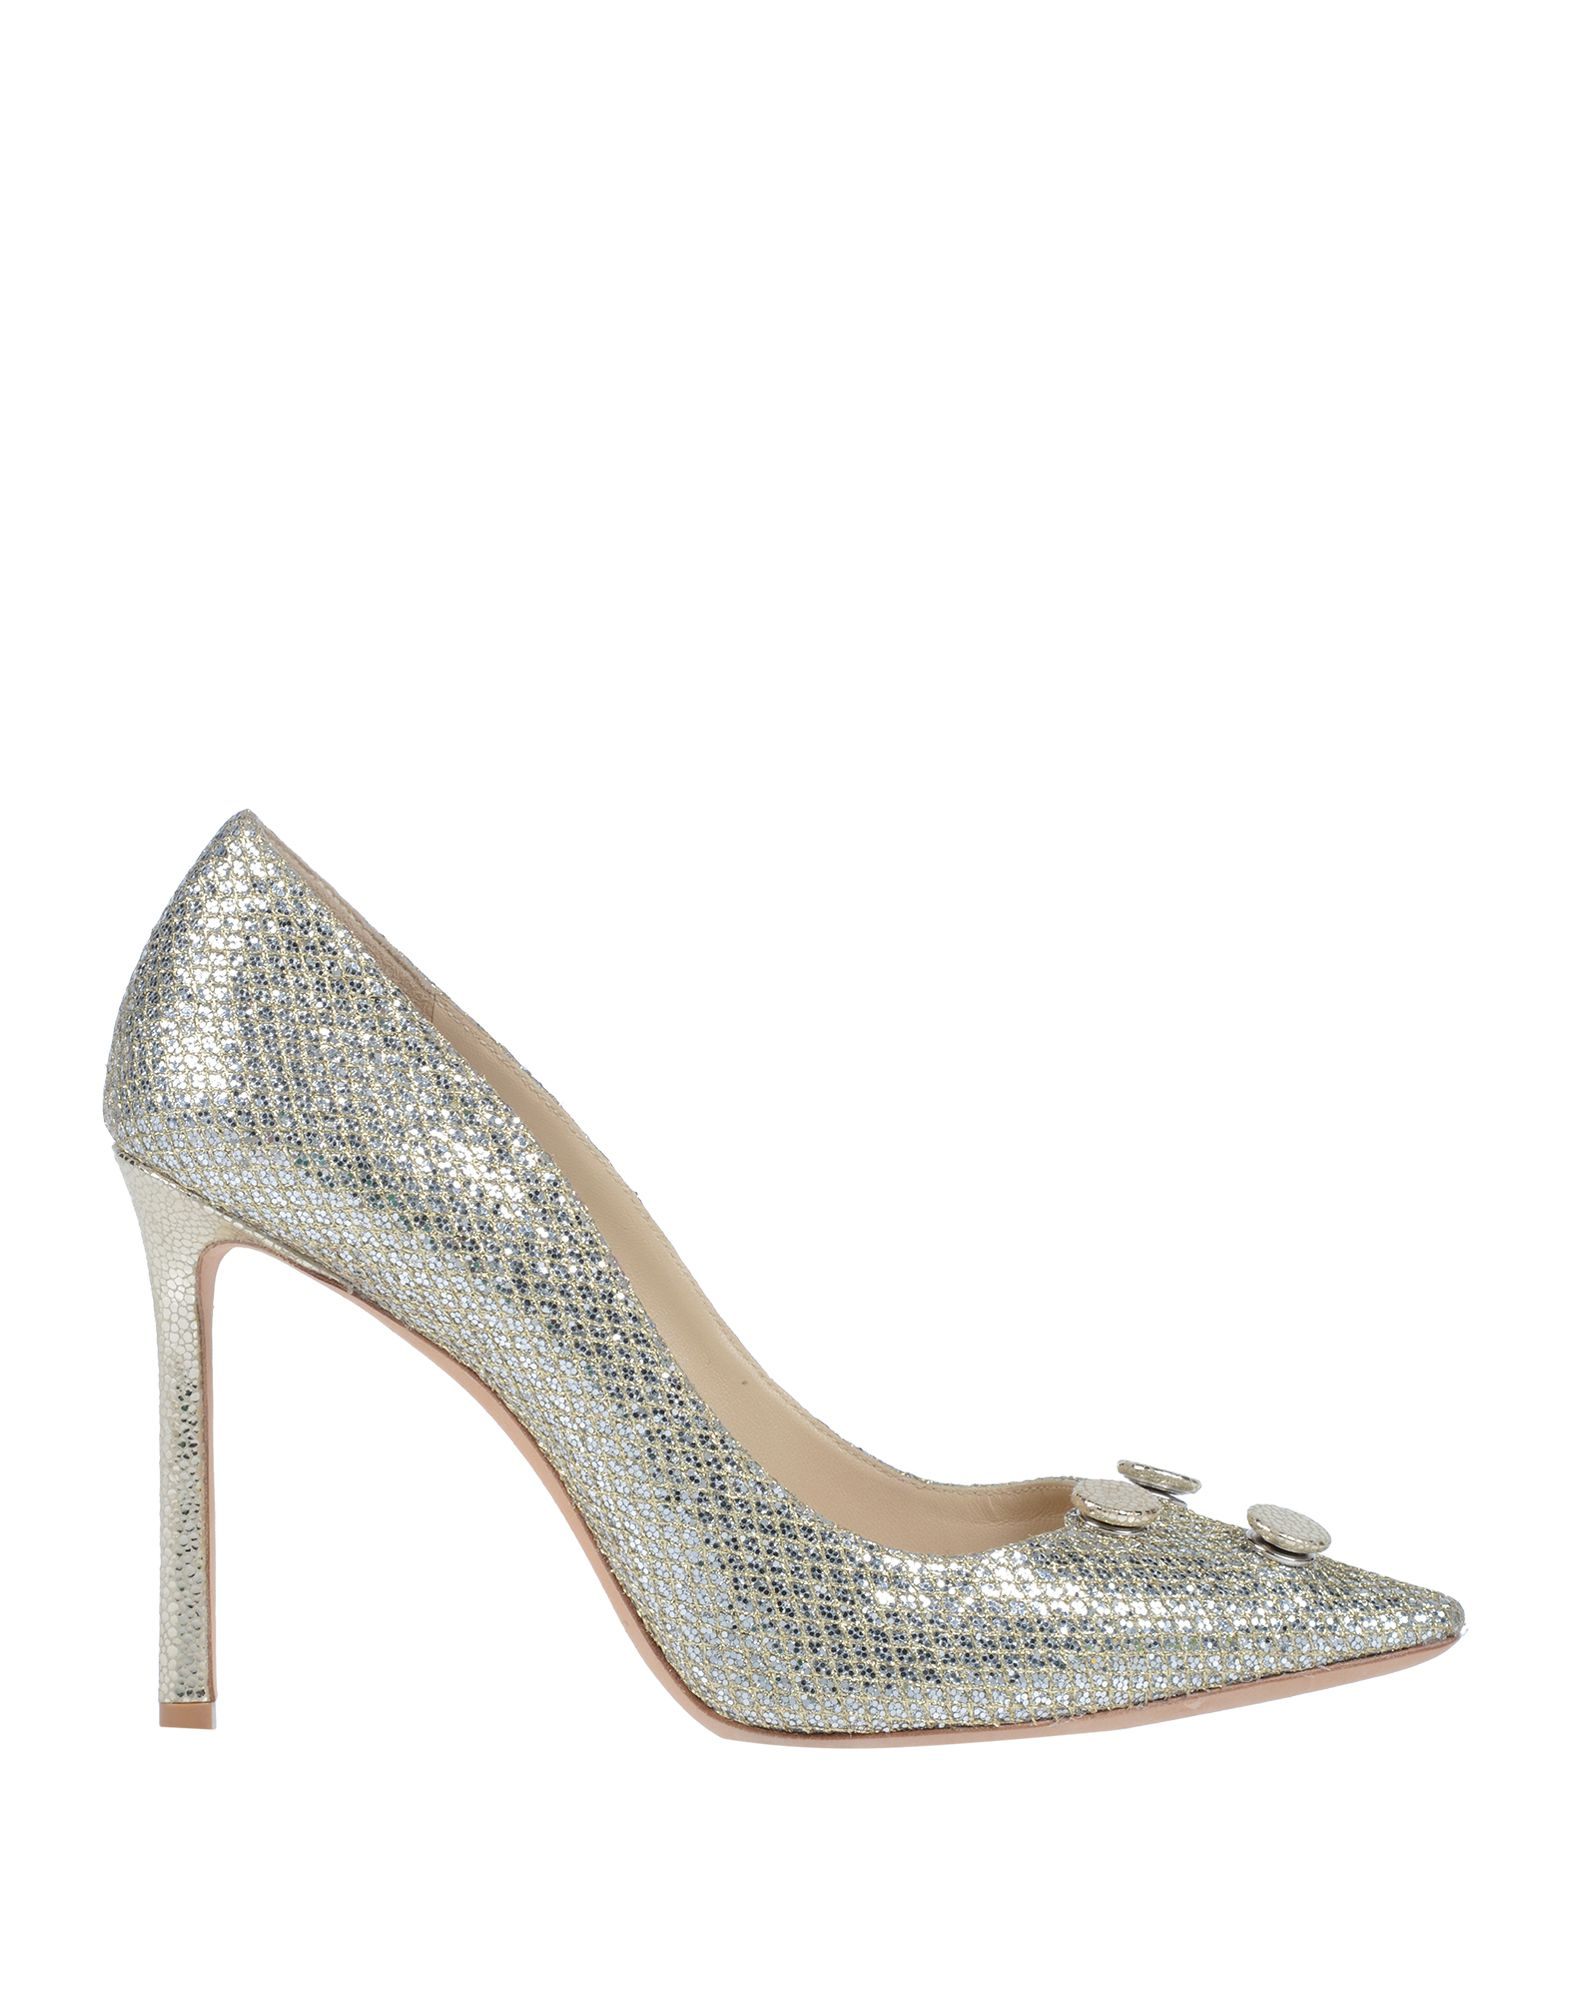 JIMMY CHOO Туфли туфли jimmy choo